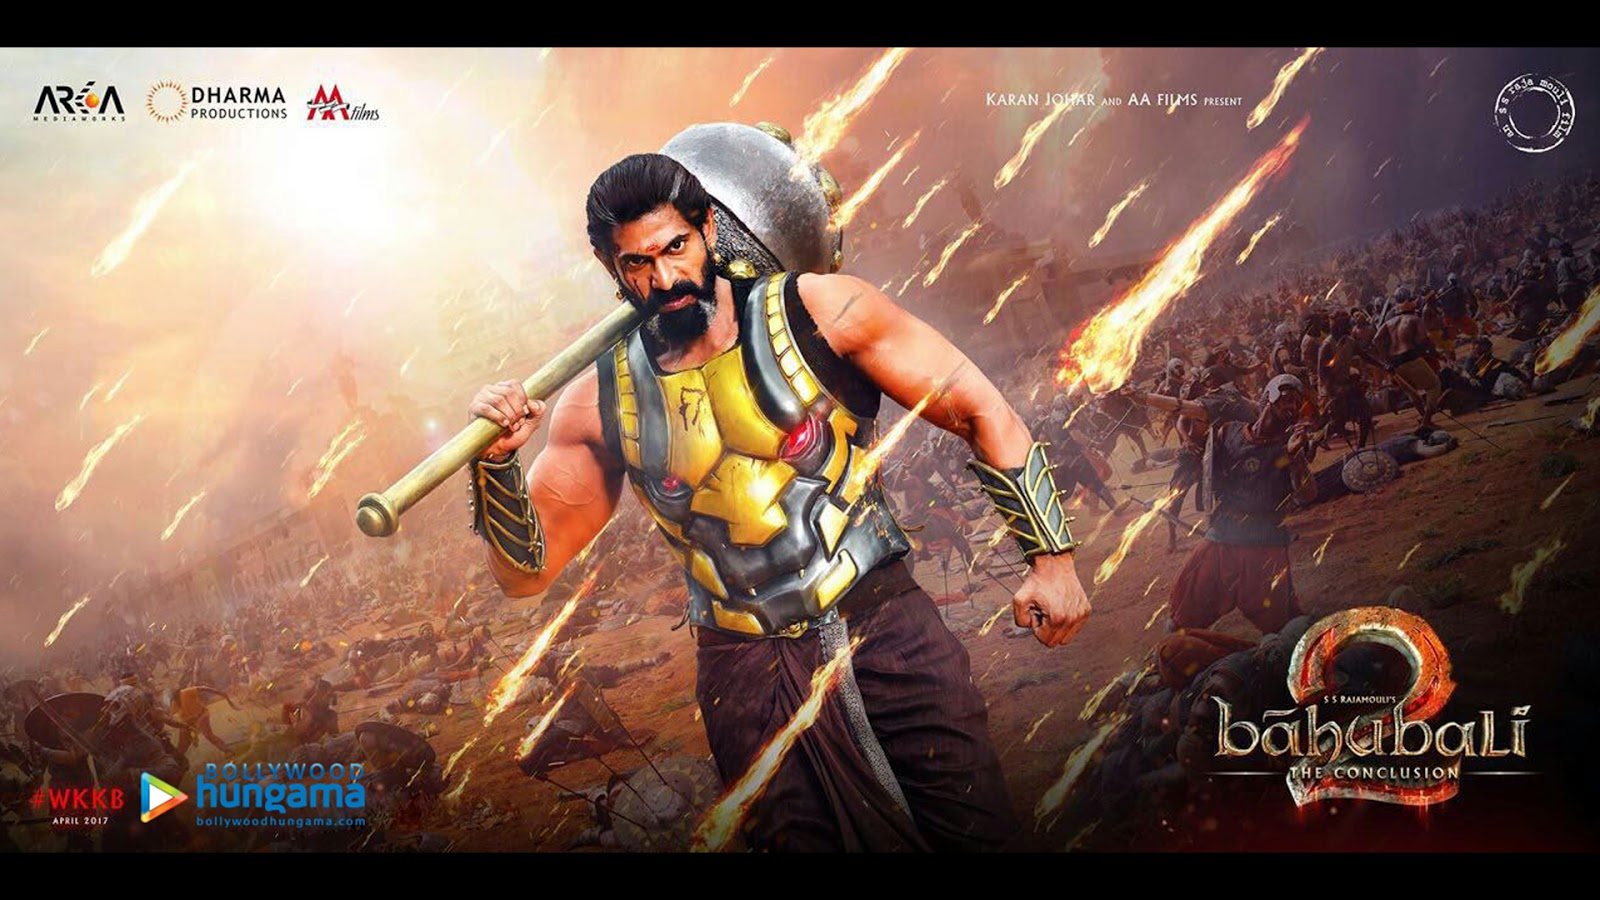 Bahubali 2 2017 Movie free Download HD 720p Pictures | HD Wllpaper 4k4